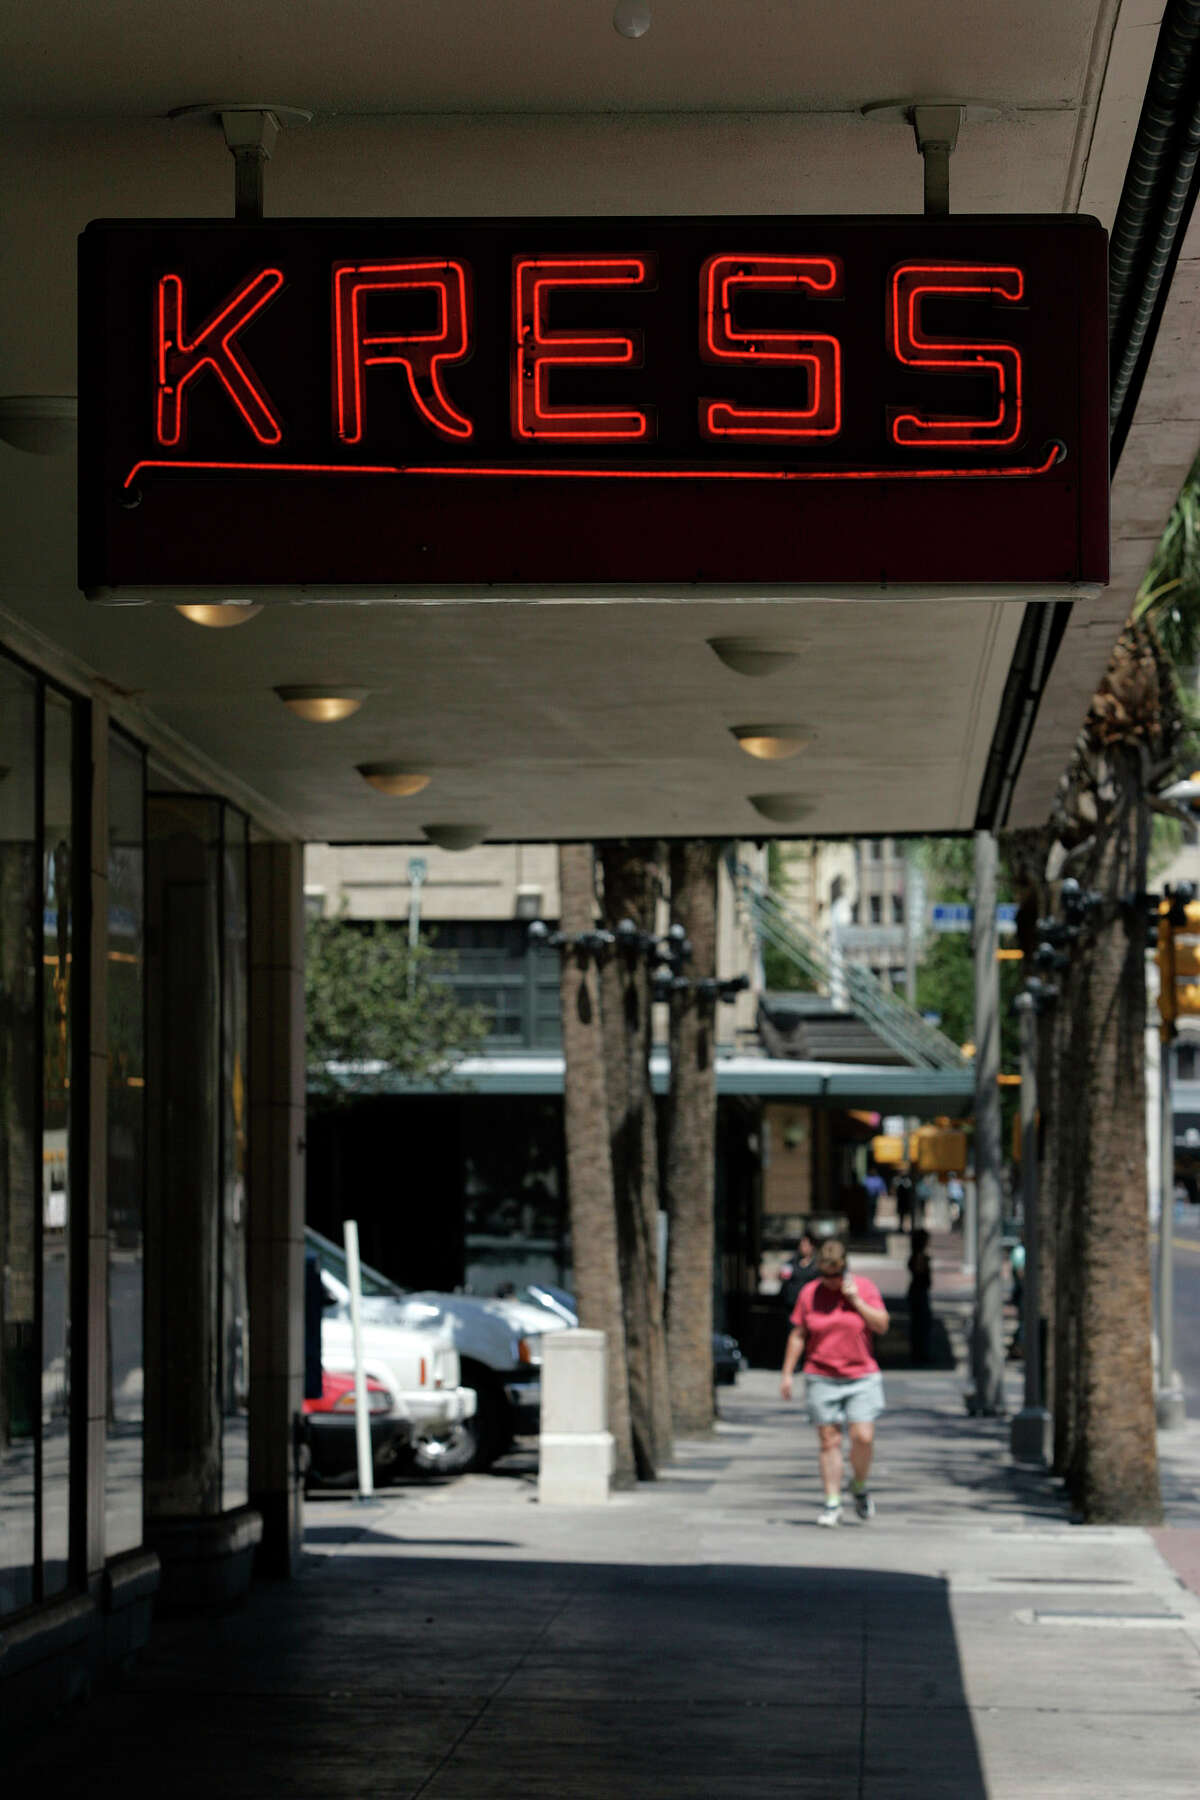 The Kress building on Houston Street, Friday, May 19, 2006. A 27-story high rise building combining hotel and condominium development is proposed for the parking lot next door. (PHOTO BY TOBY JORRIN/SPECIAL TO EXPRESS-NEWS)